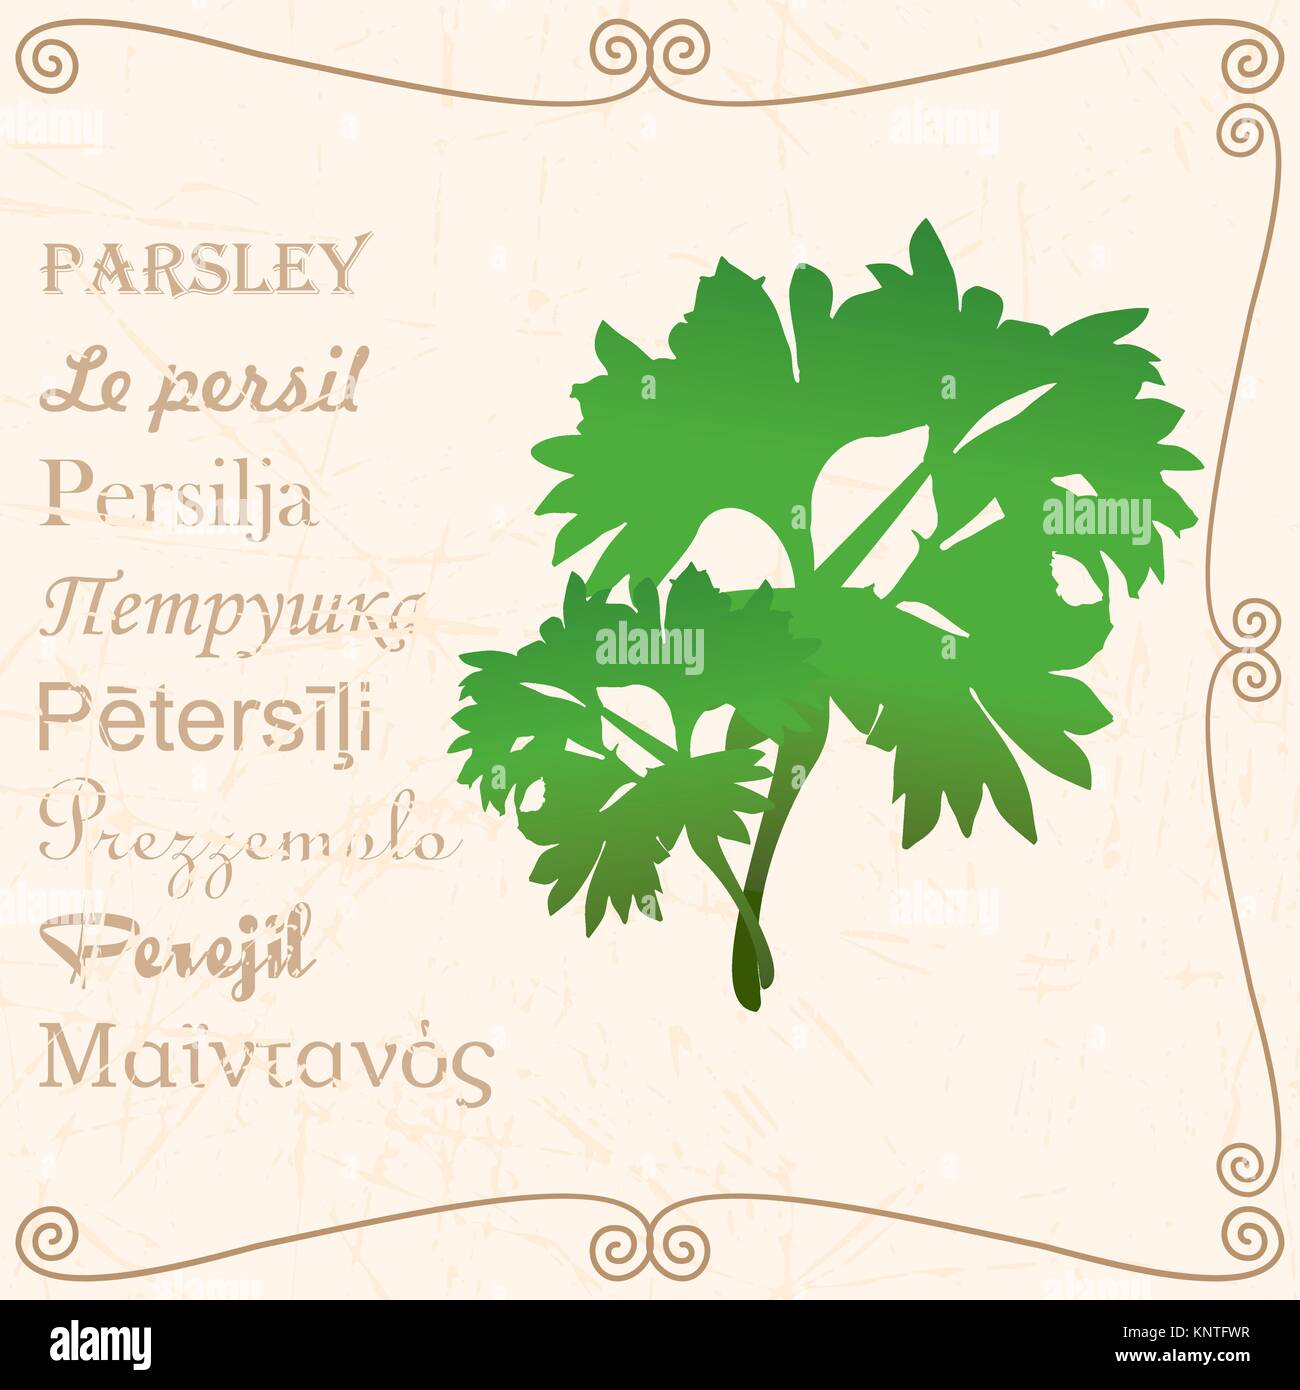 Sprig of parsley in vintage style - Stock Vector